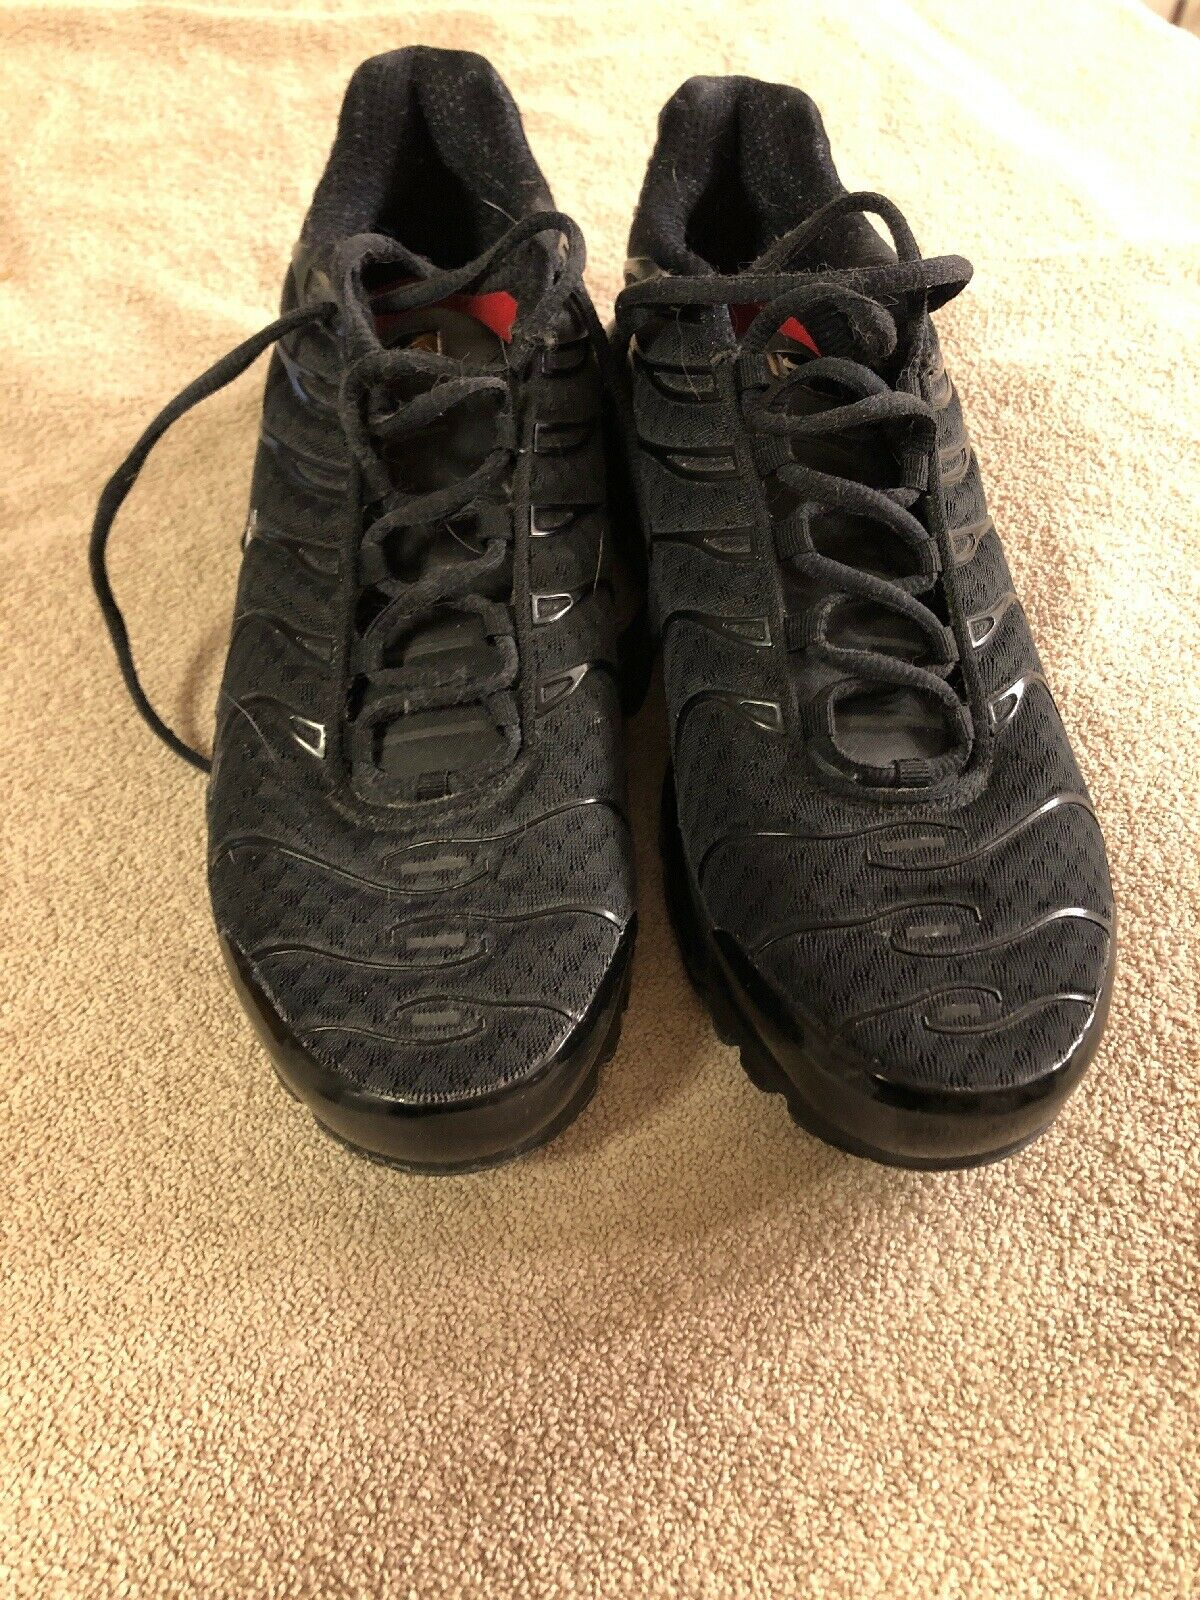 Nike Pre Owned Mens NT Air shoes Size 11.5 Black